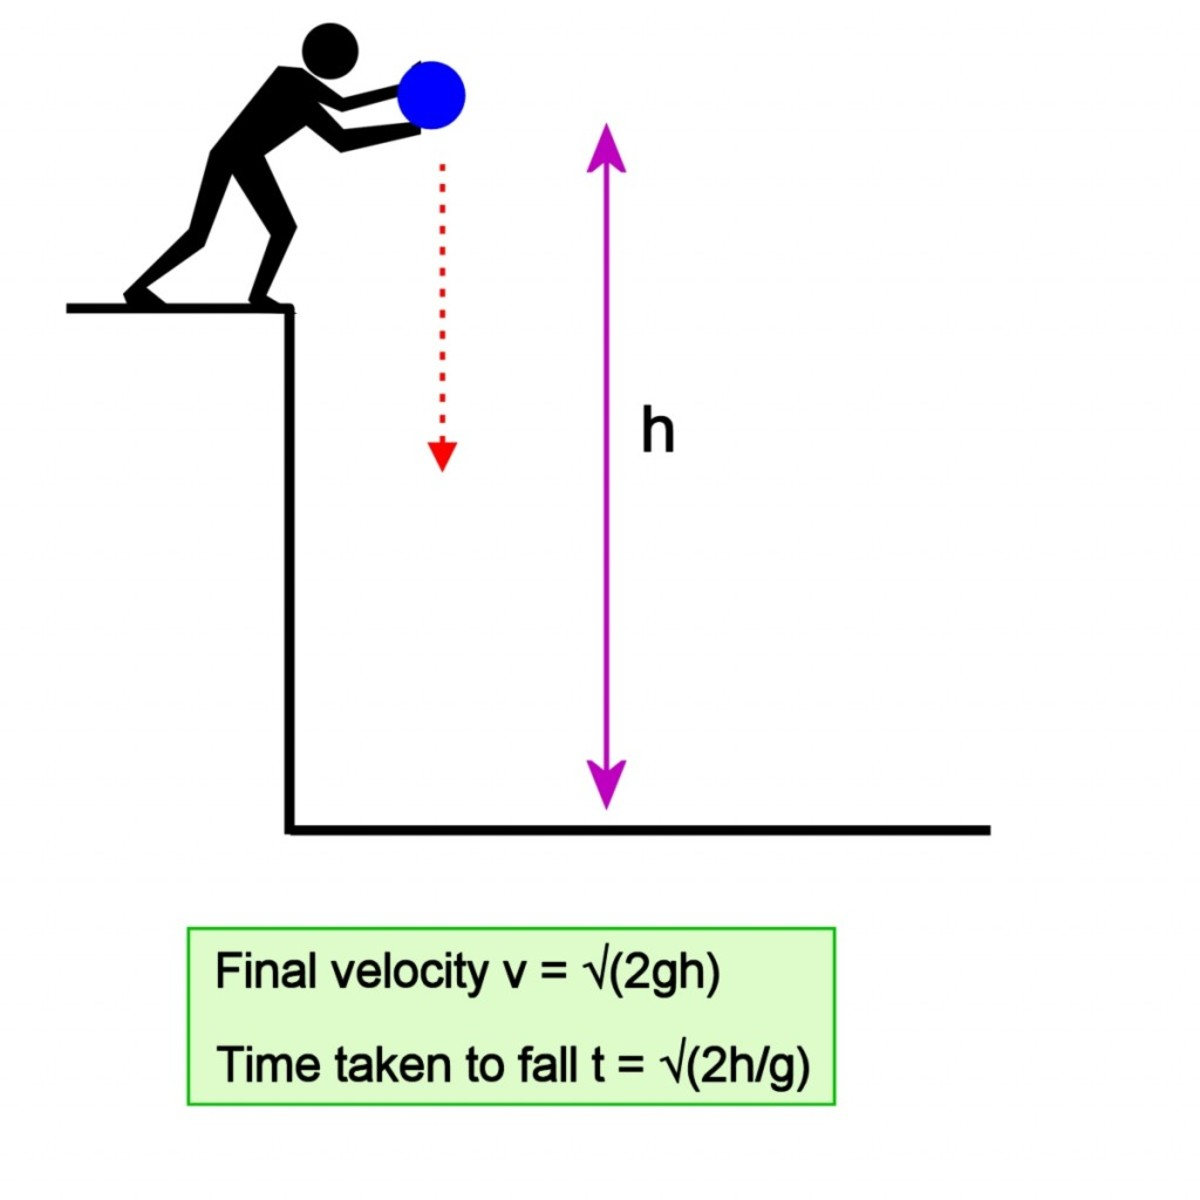 Without an atmosphere and drag, falling objects would increase in velocity until they hit the ground